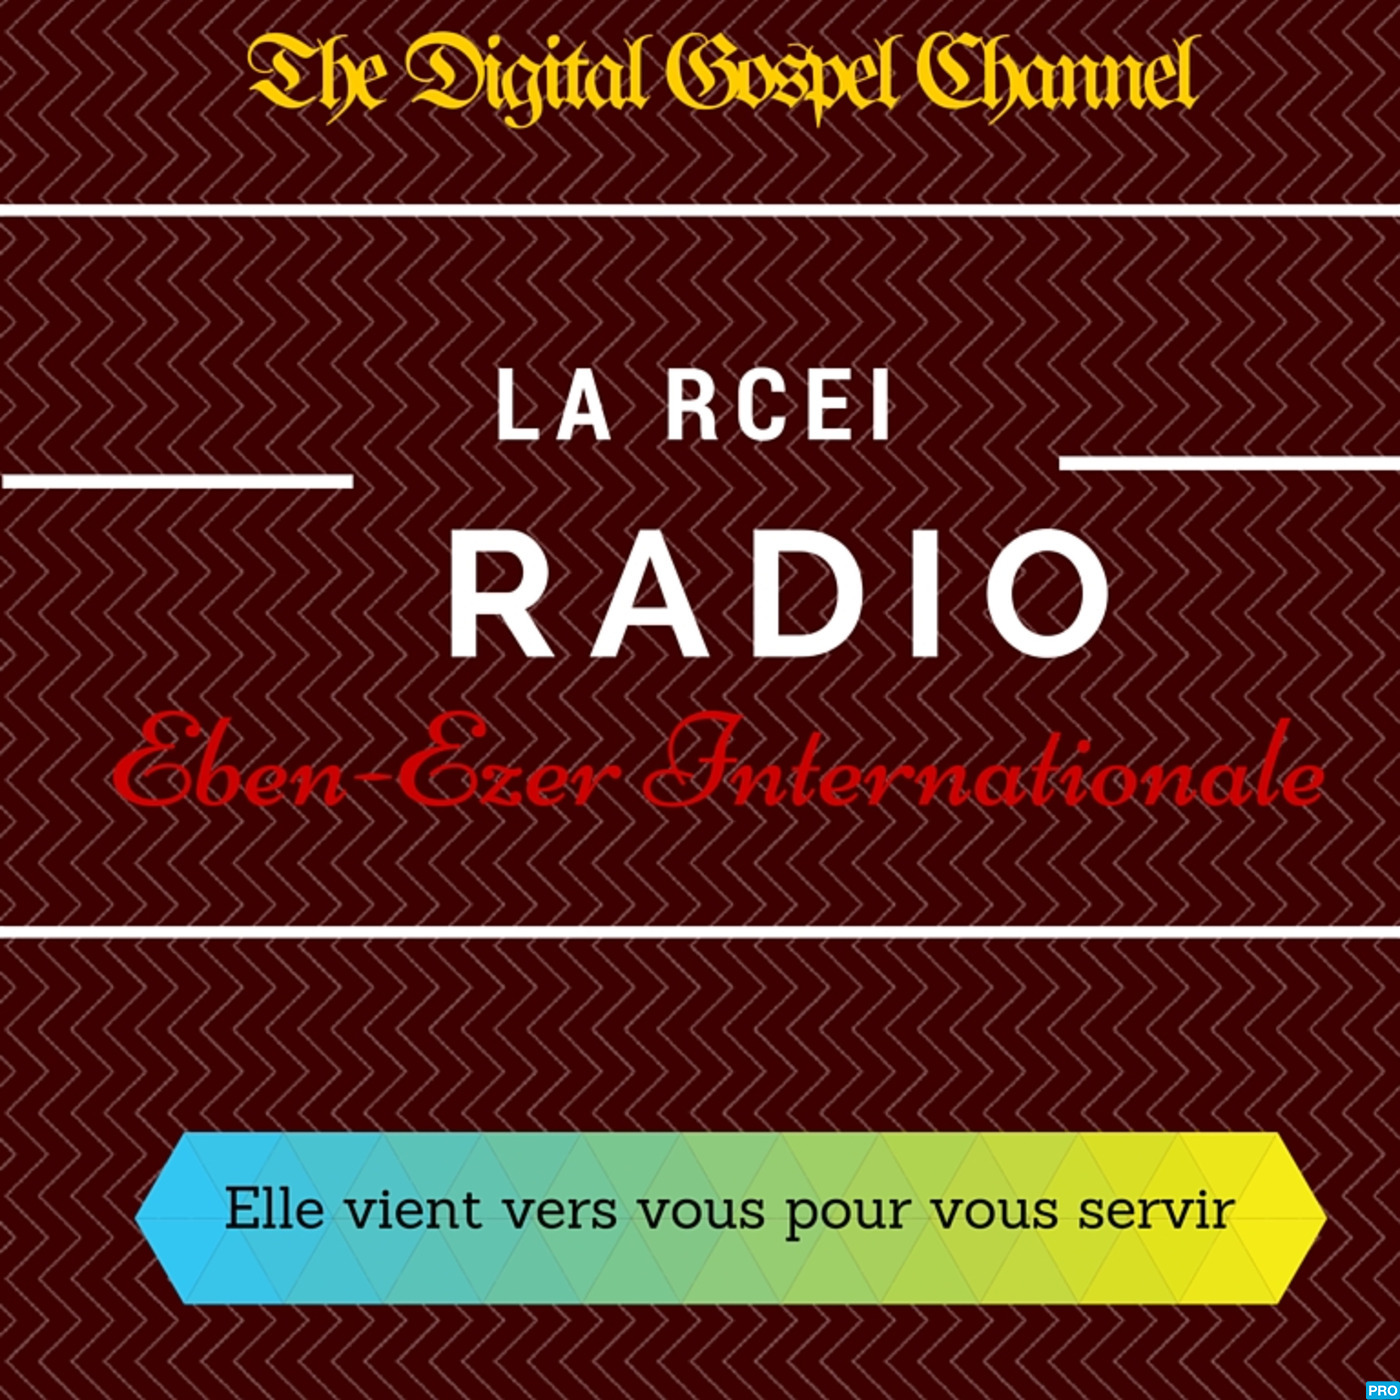 Radio Eben-Ezer Internationale ( The Digital Gospel Channel) Ministry  Franck DORISTIL: Podcaster, Publishing author, Christian artist, Pastor